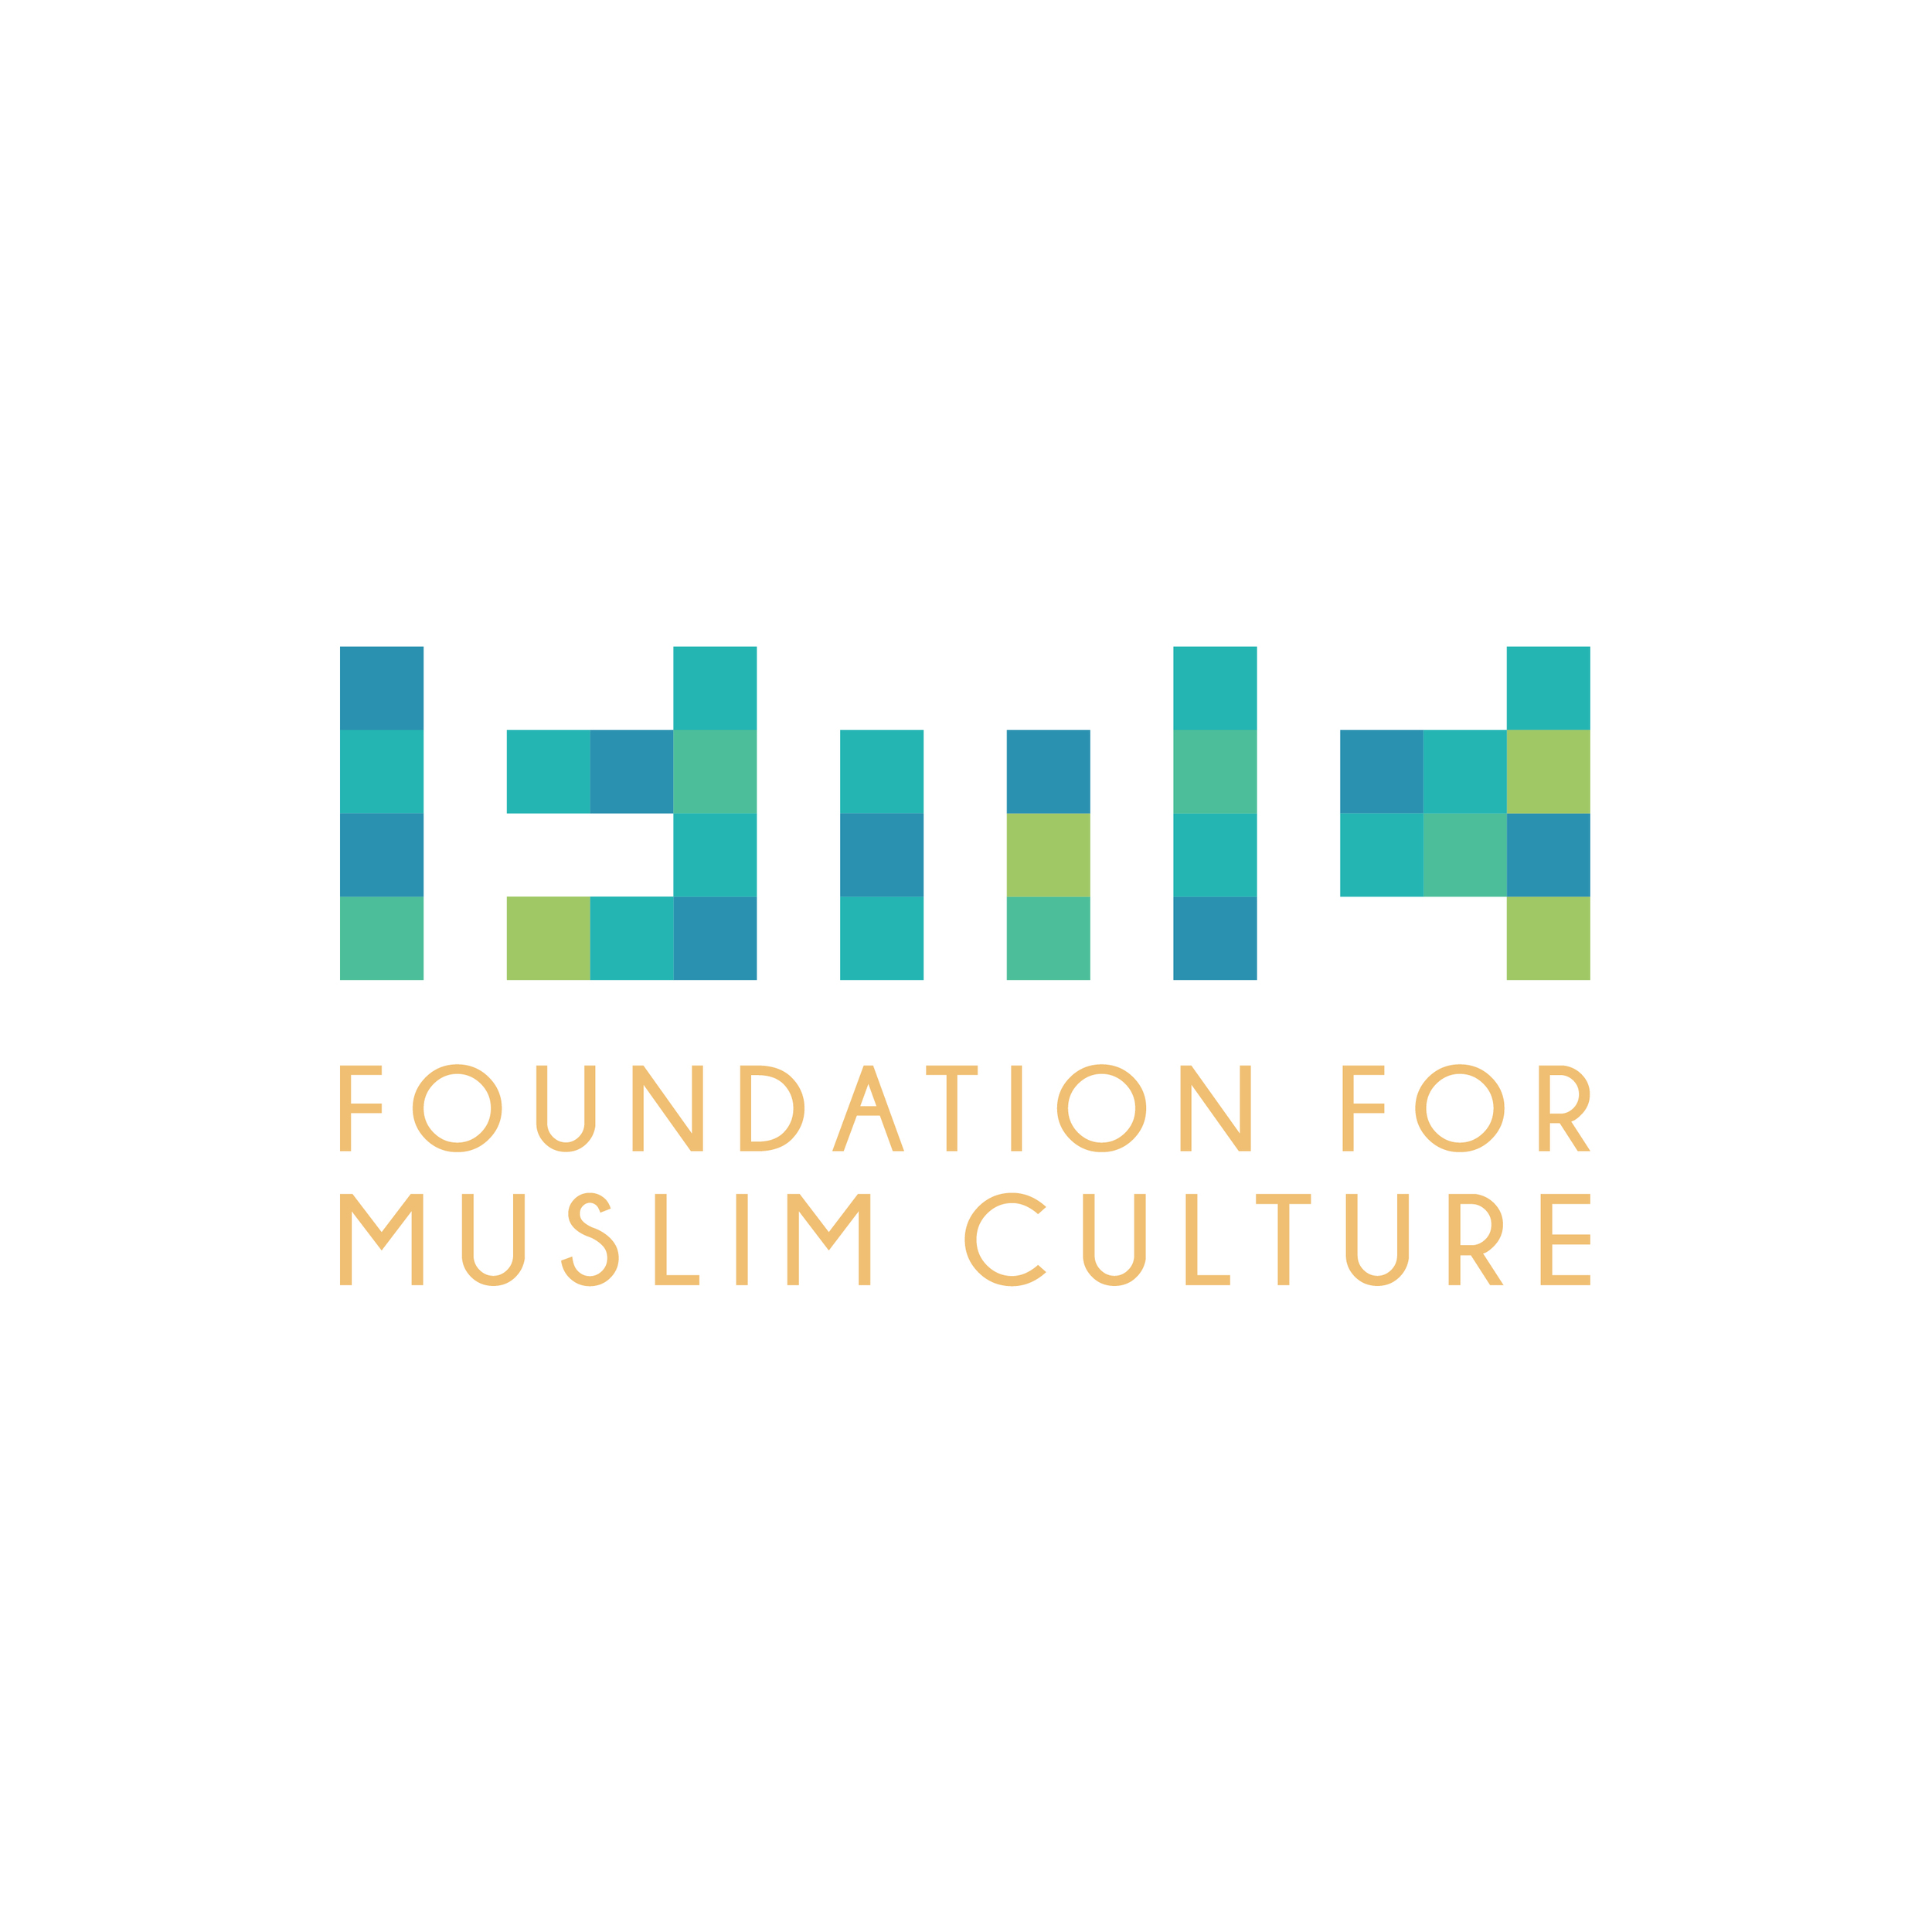 Foundation for Muslim Culture